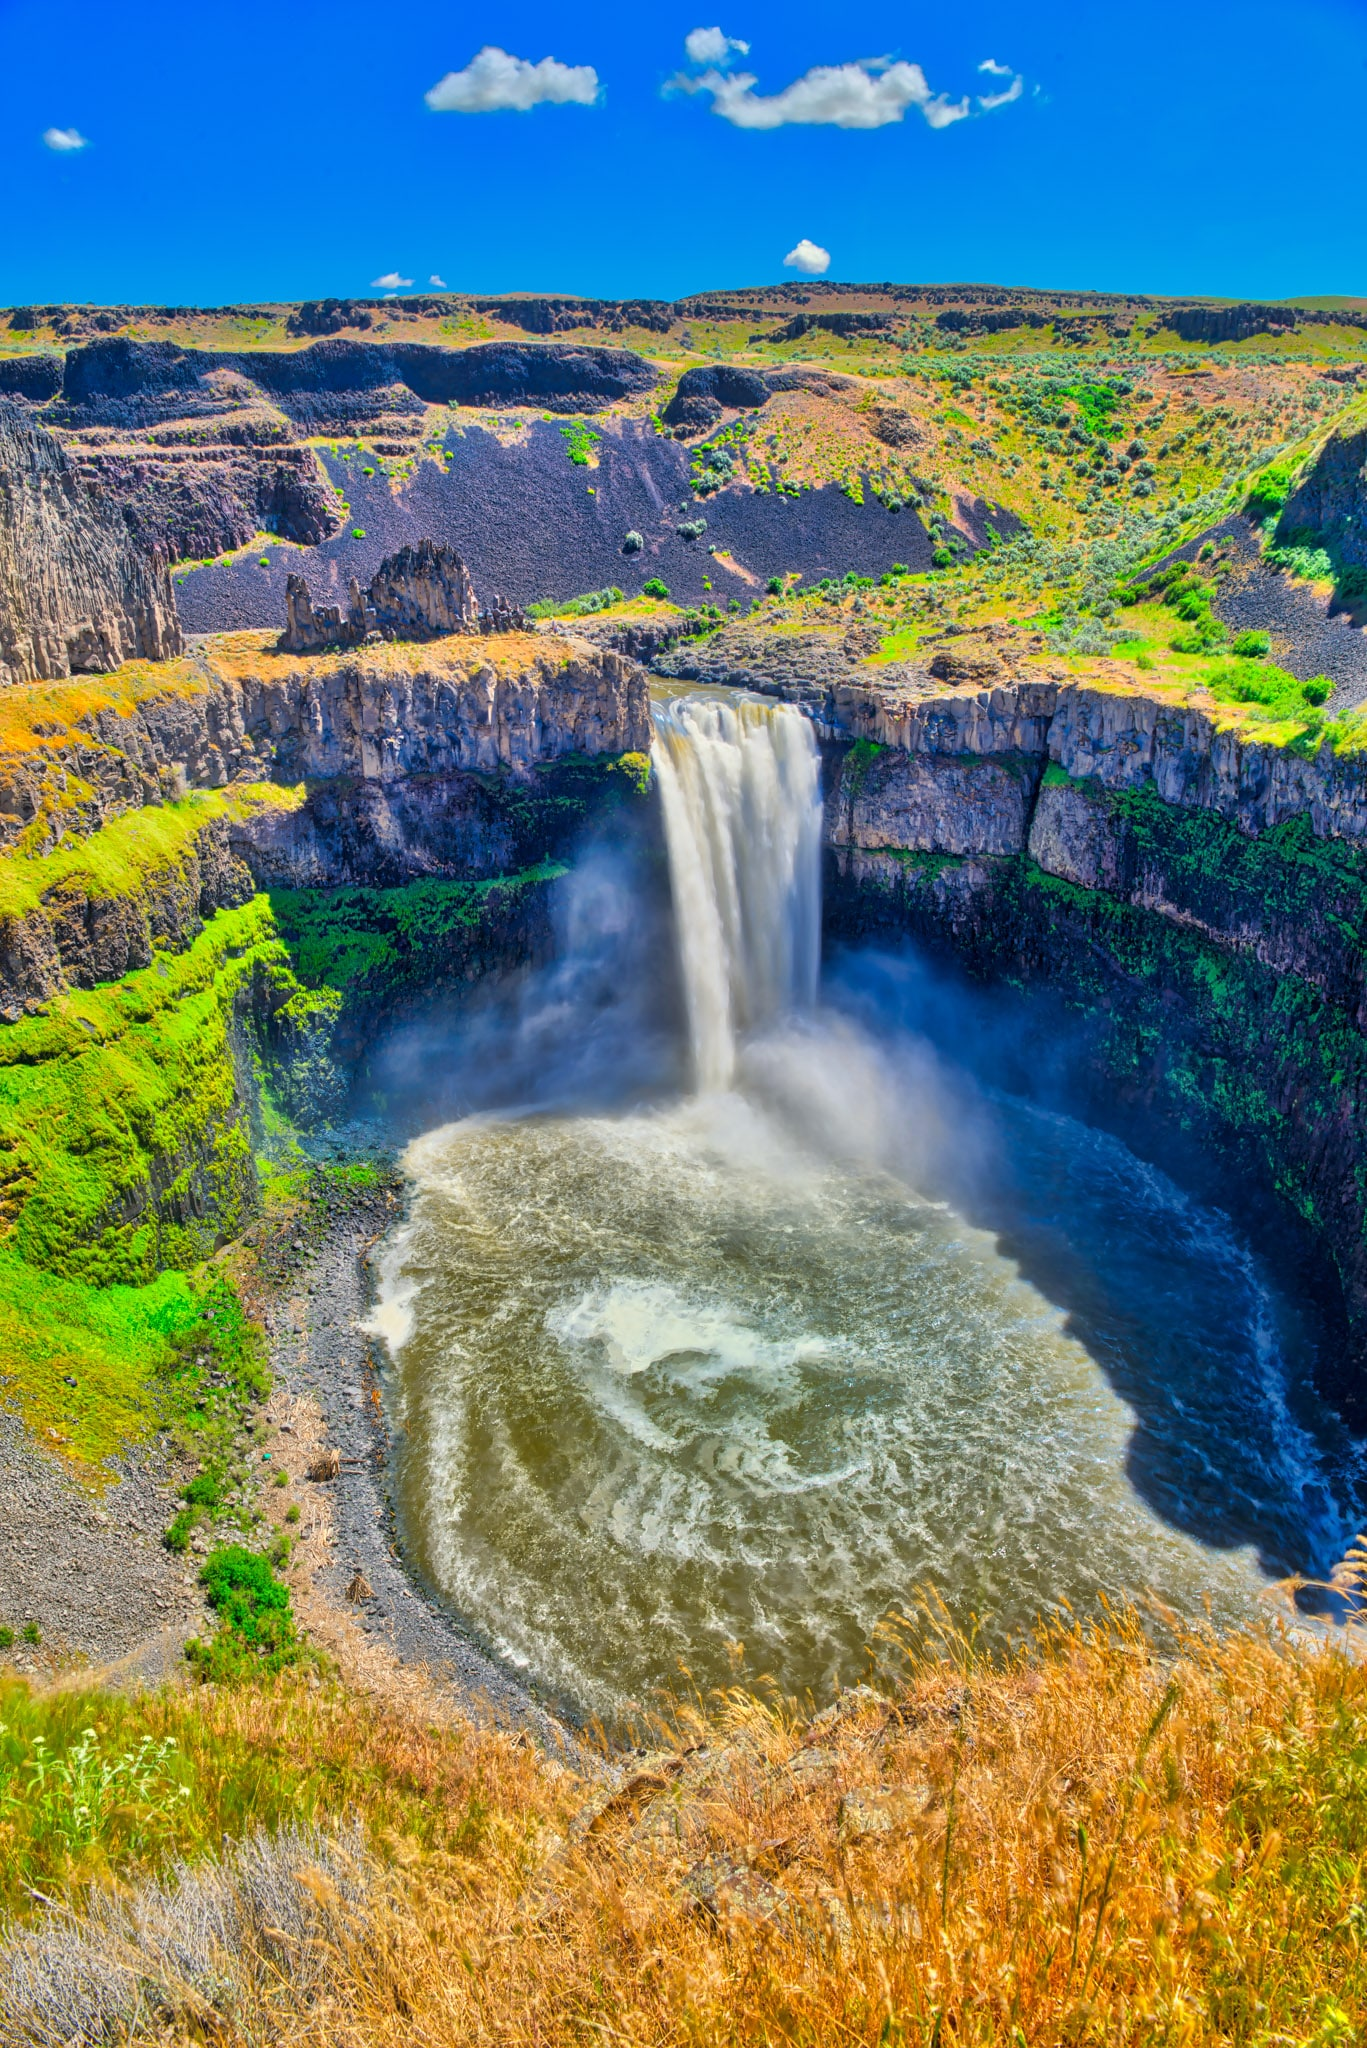 Palouse Falls, in Palouse Falls State Park, plunges 186 feet into a large plunge pool. It is one of several falls and cascades on the Palouse River. It is located between Spokane and Walla Walla, Washington.